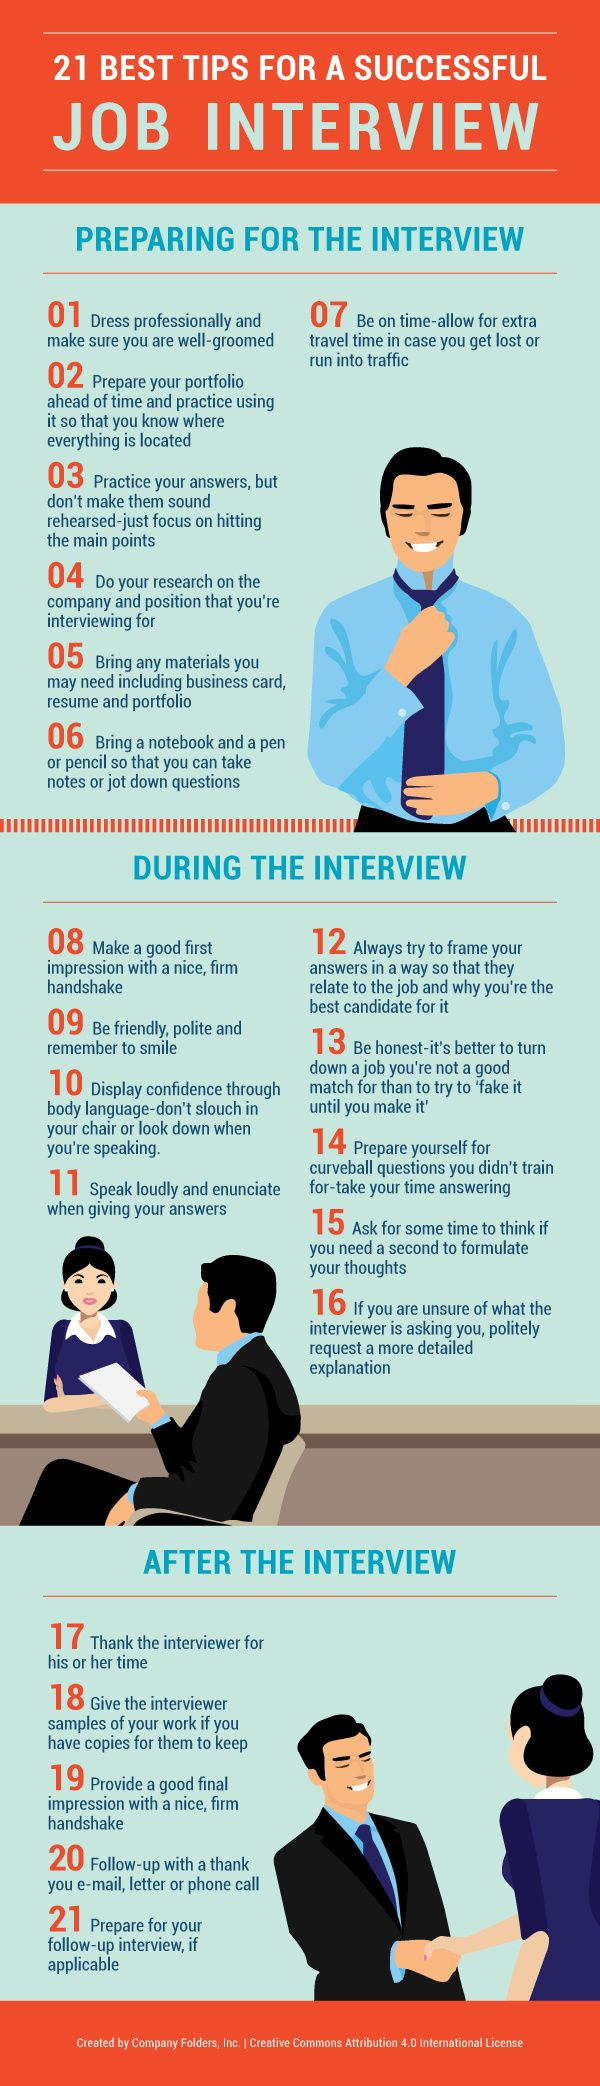 21 best tips for a successful job interview infographic jobclustercom blog